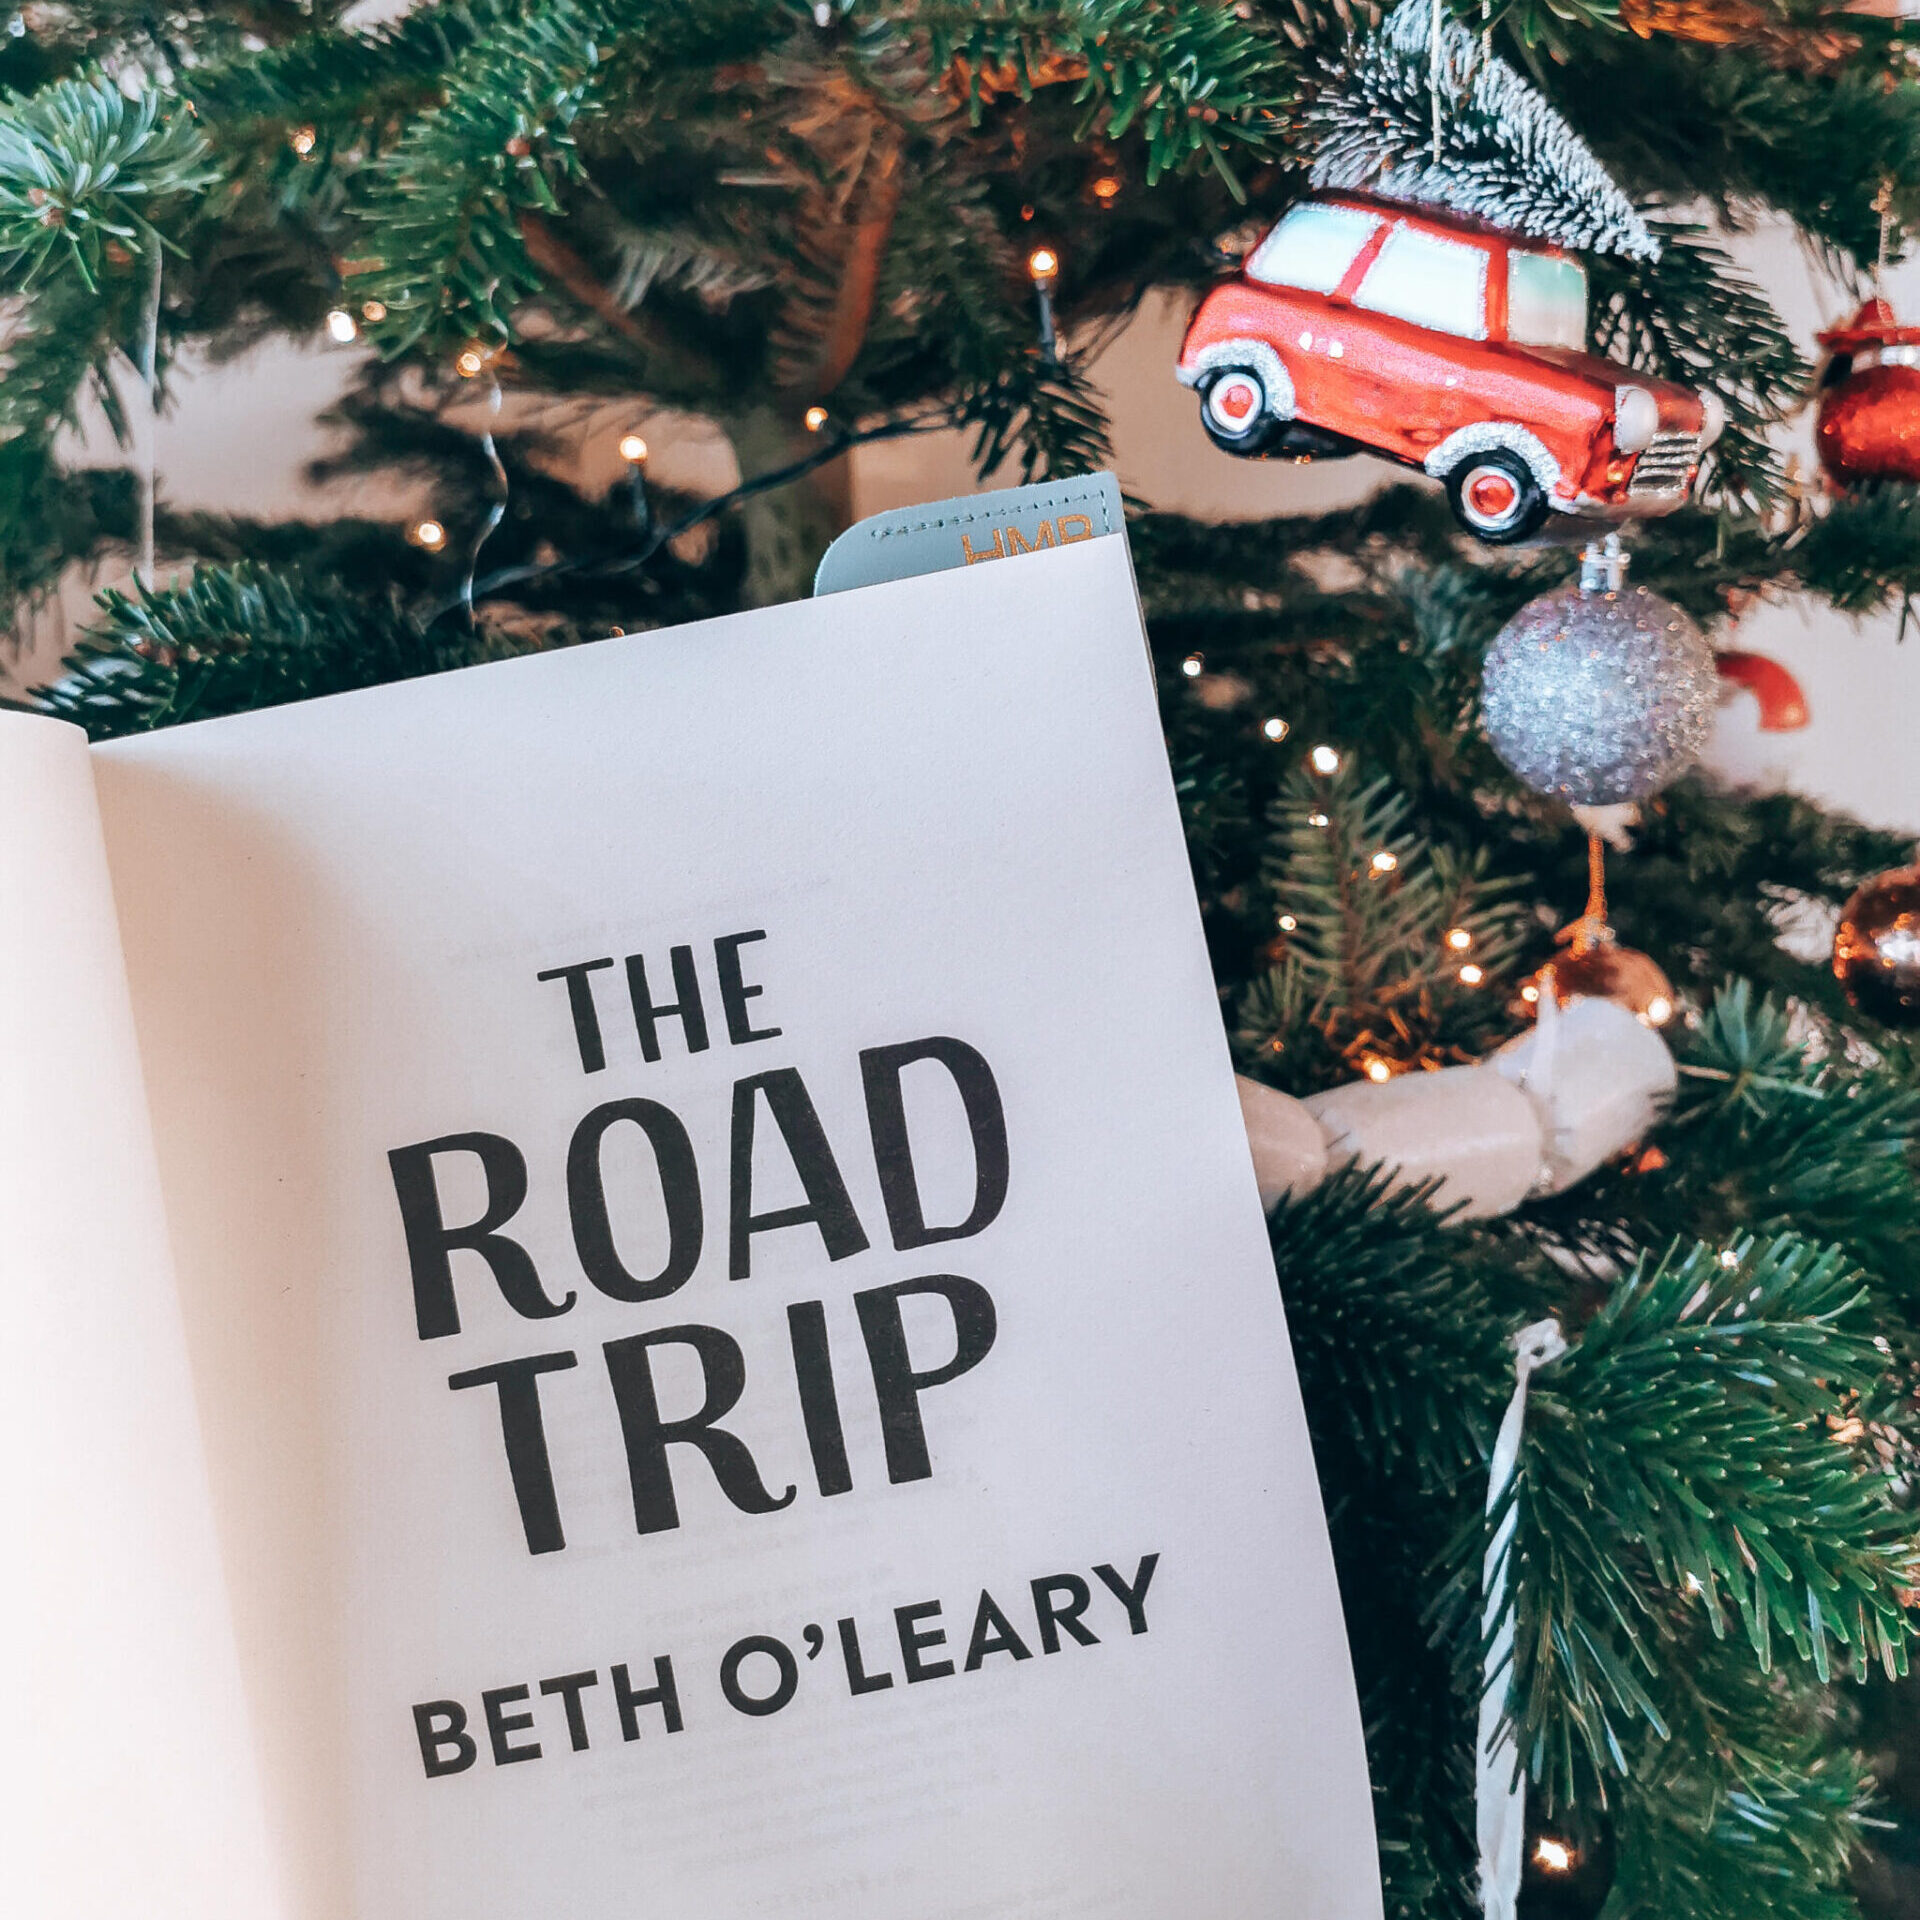 The Road Trip Beth OLeary